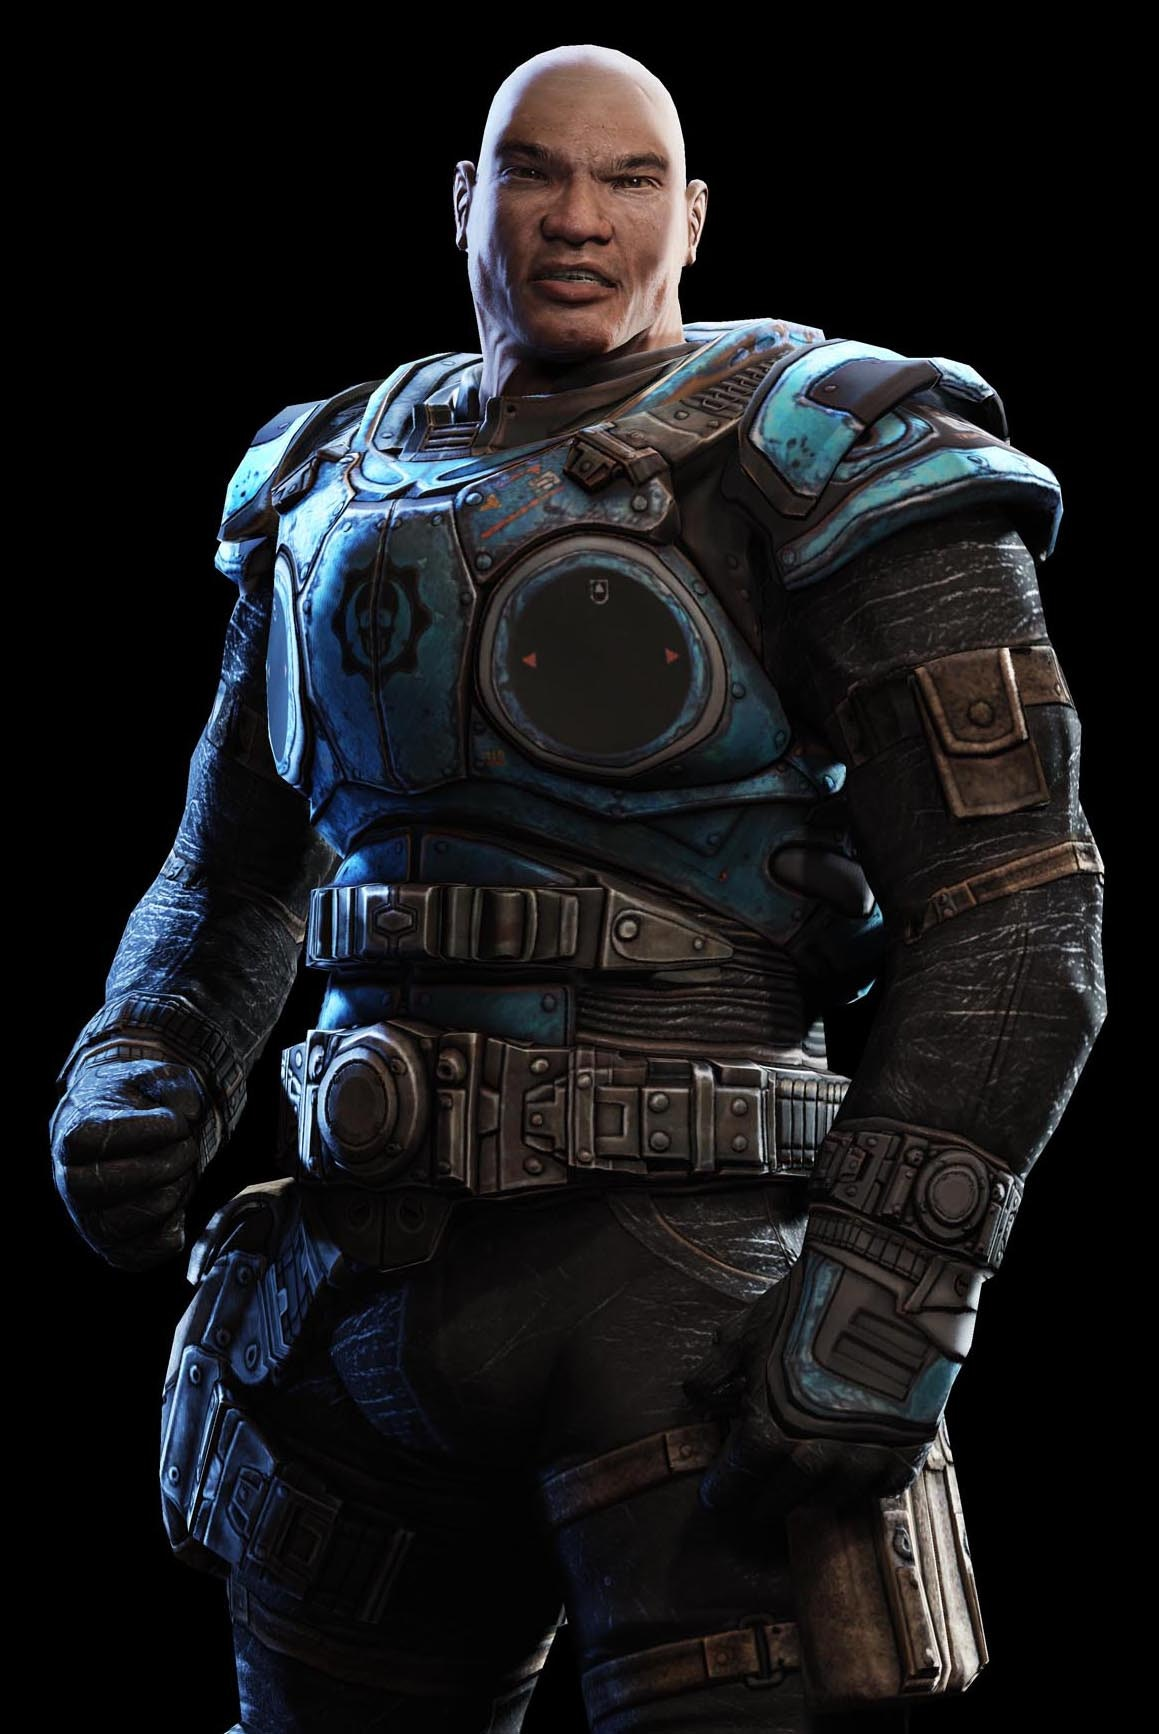 Image Minh Young Kim dans Gears of War